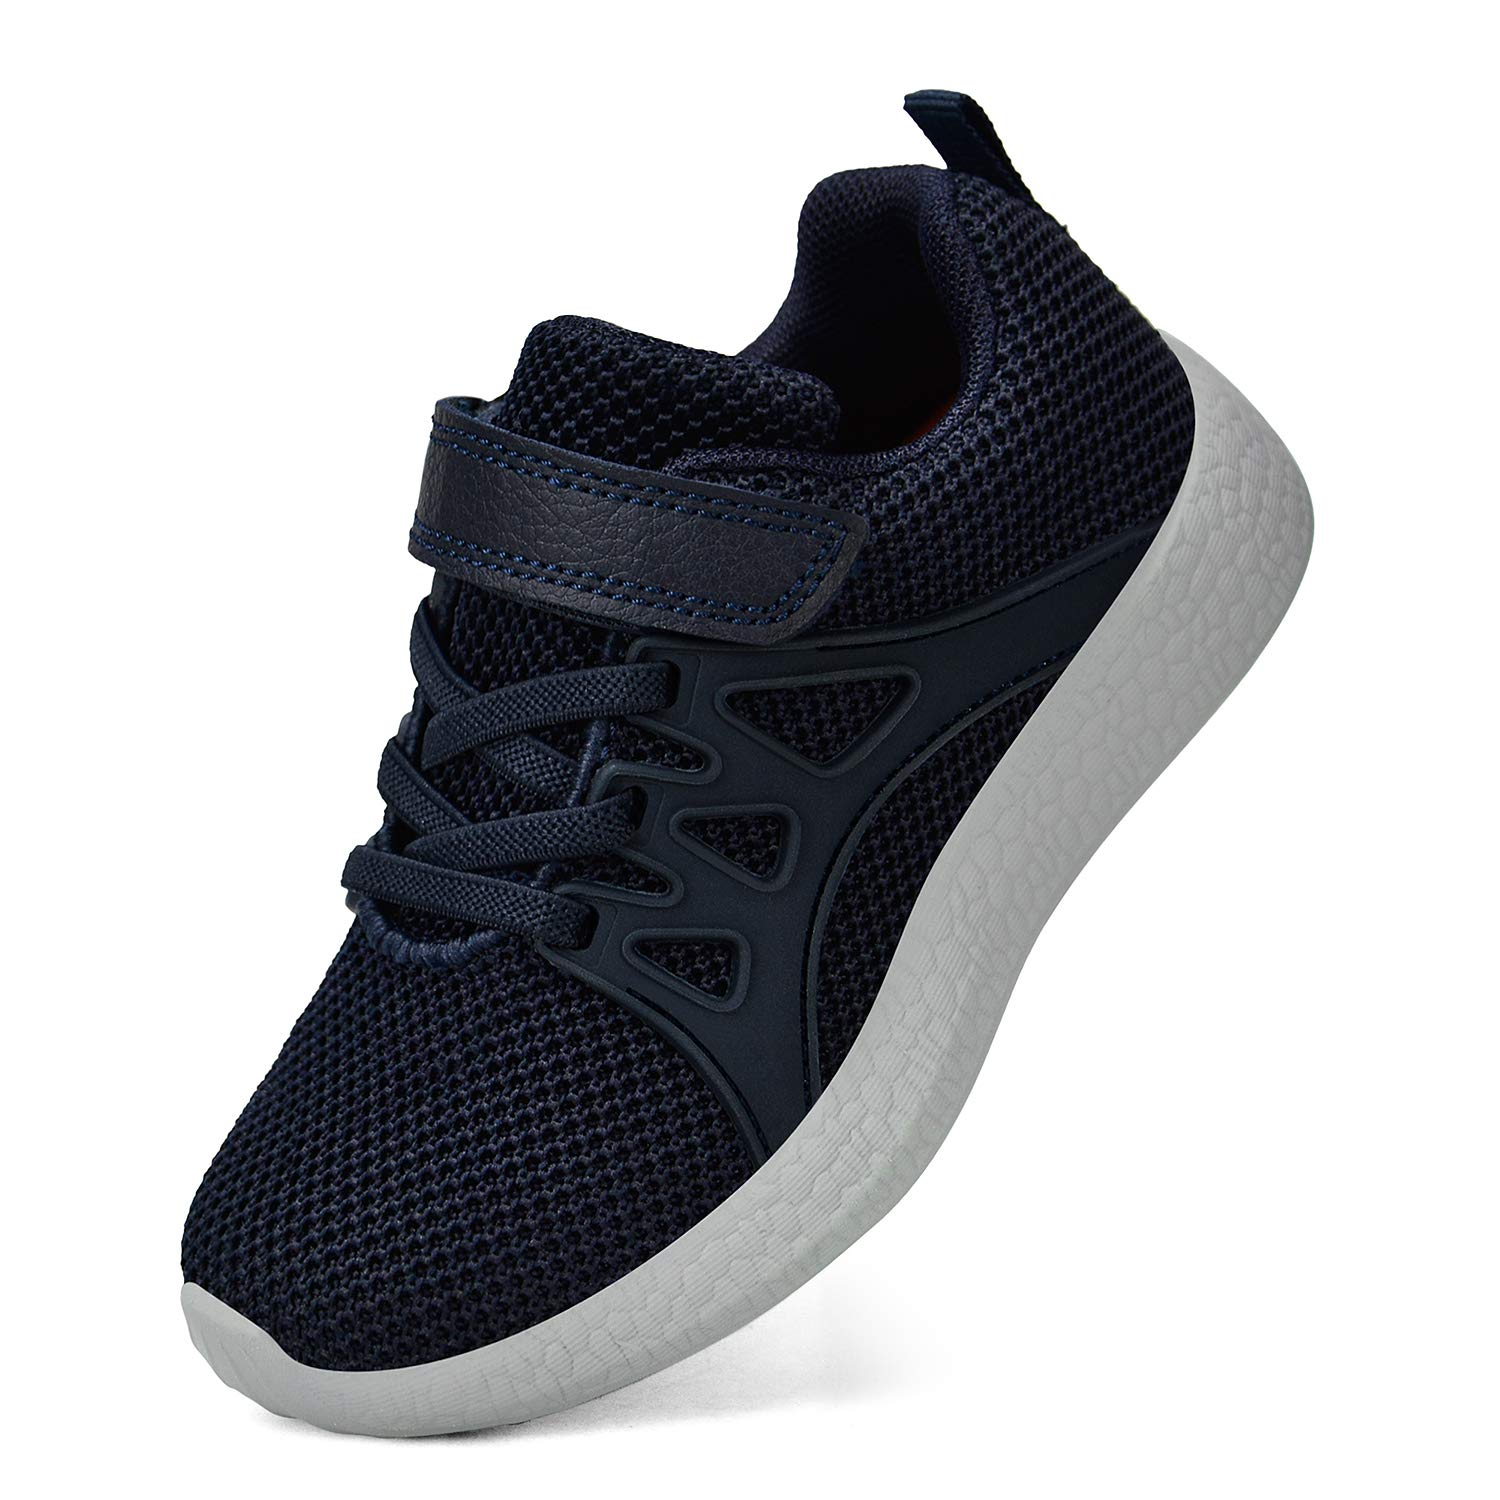 SouthBrothers Kids Sneakers Breathable Boys Running Shoes Navy Size 1.5 M US Little Kid